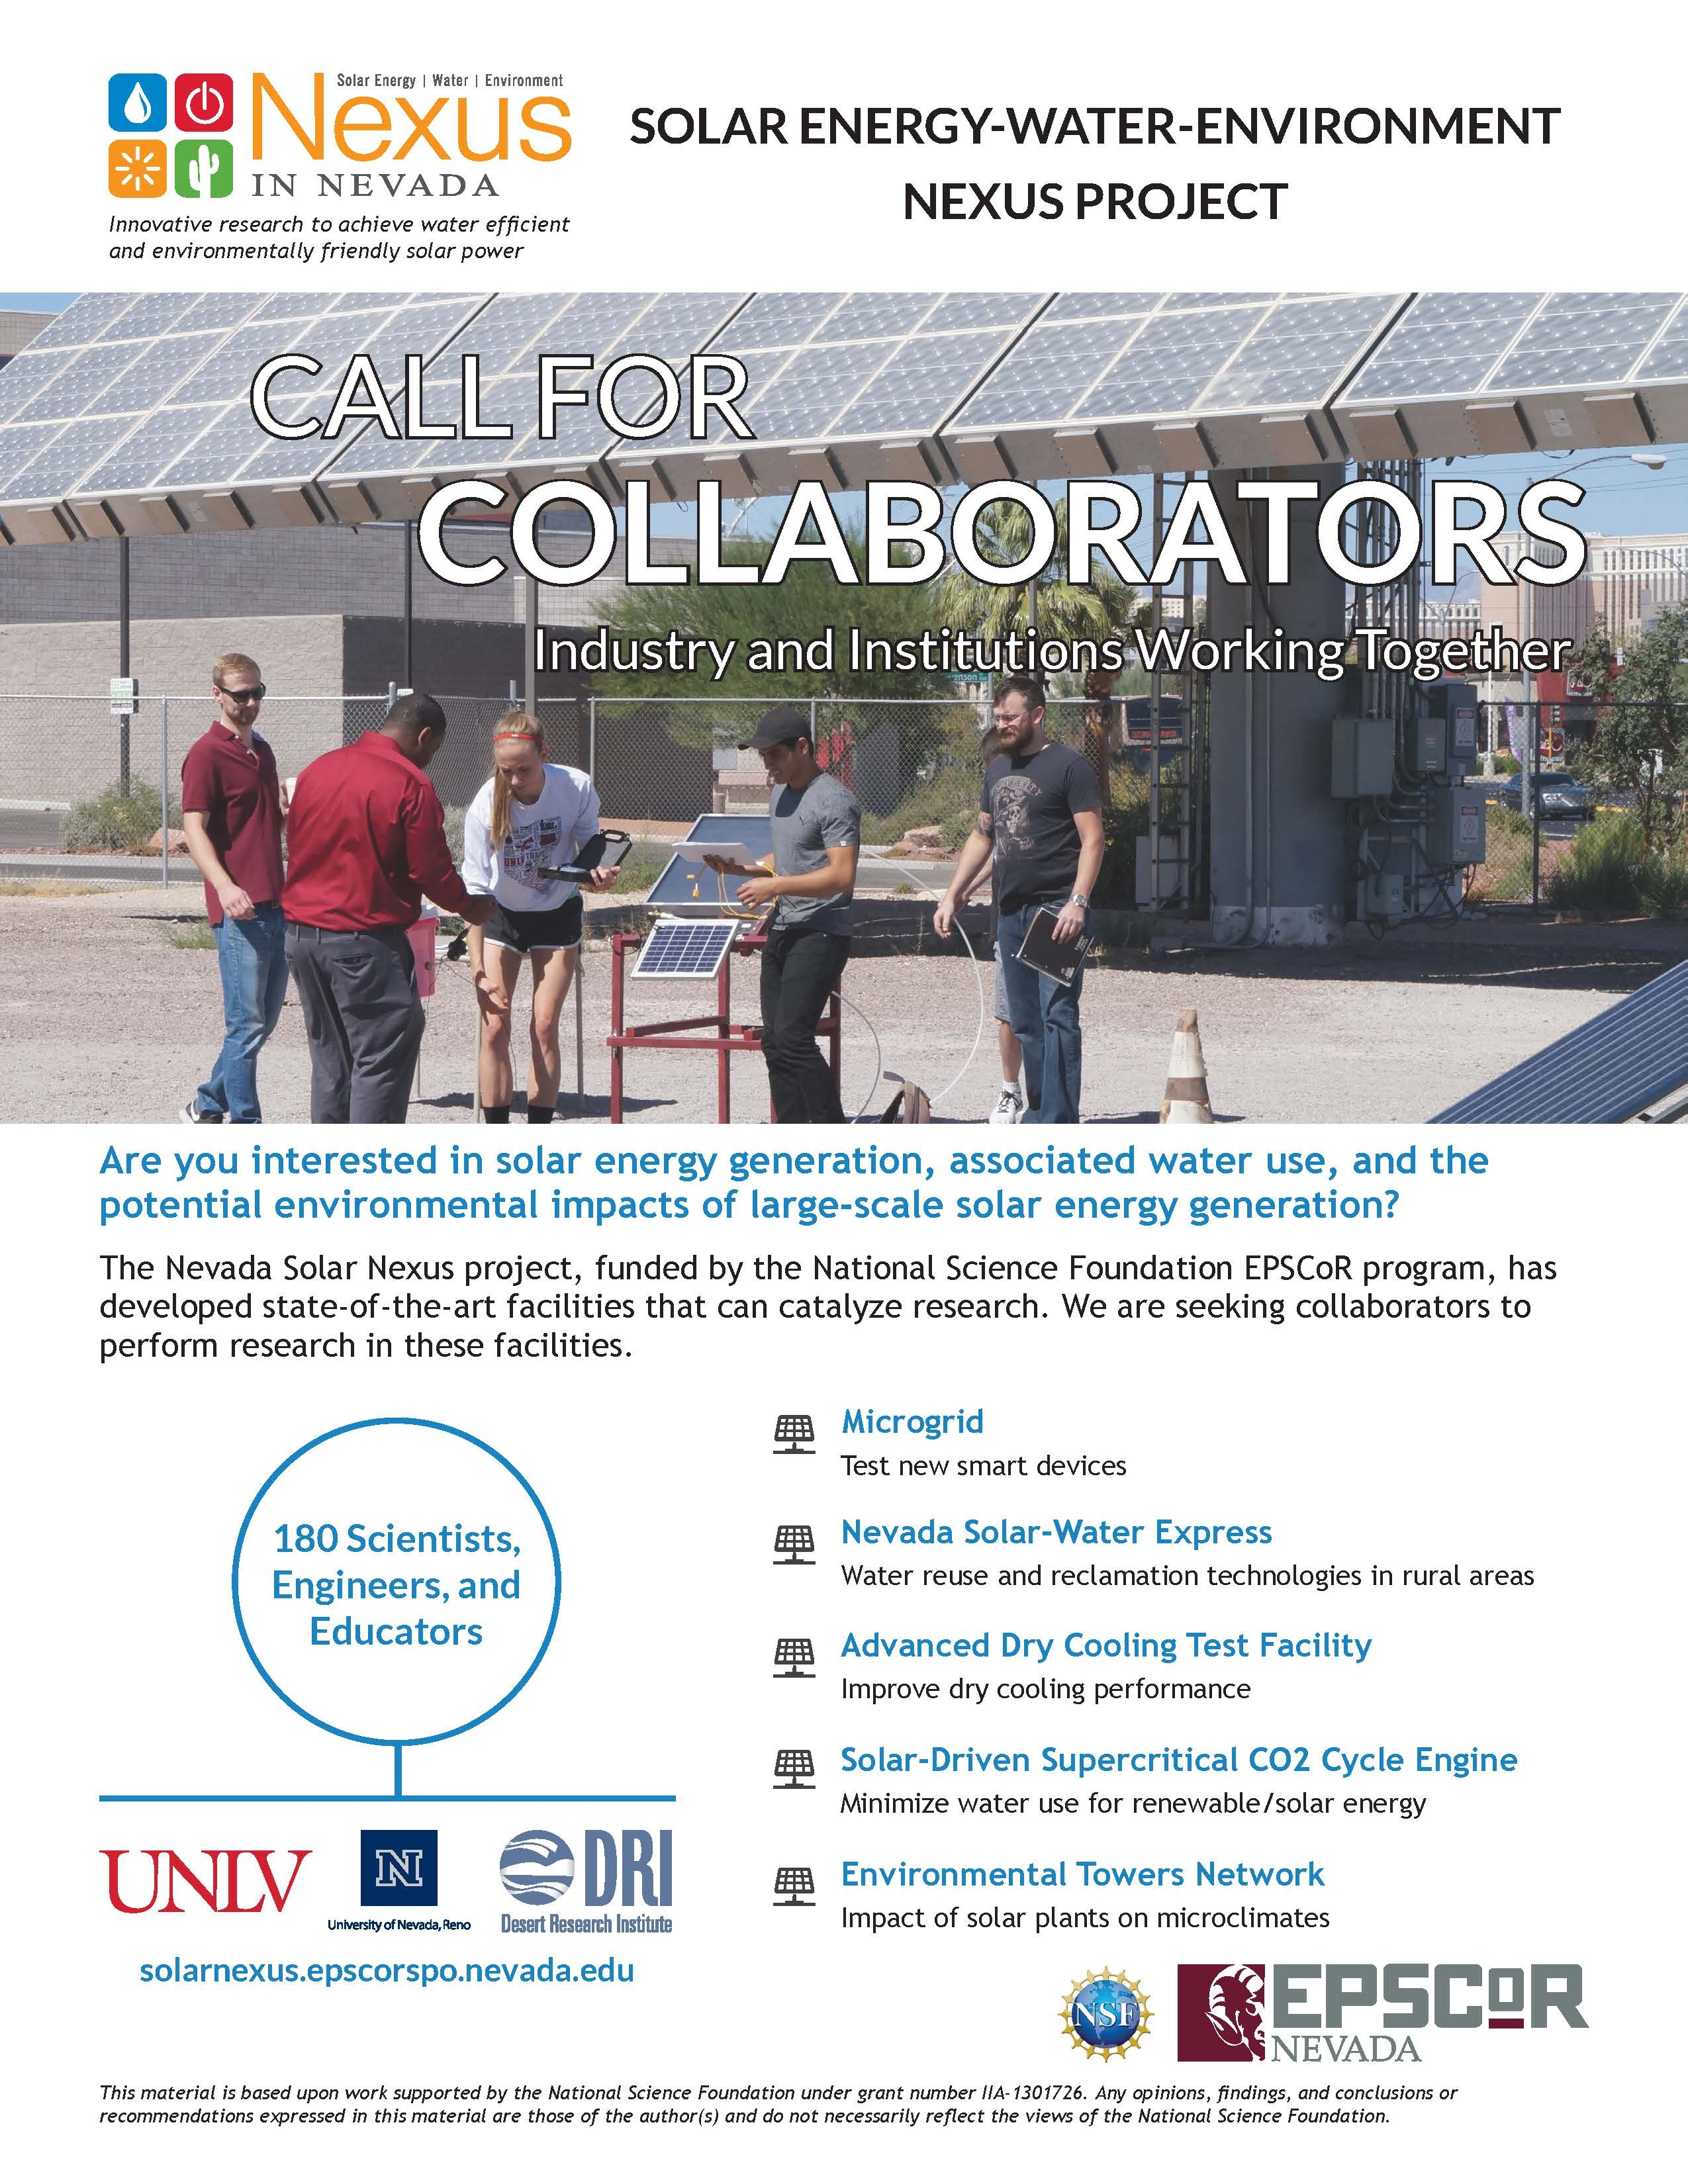 Call for Collaborators, Page 1